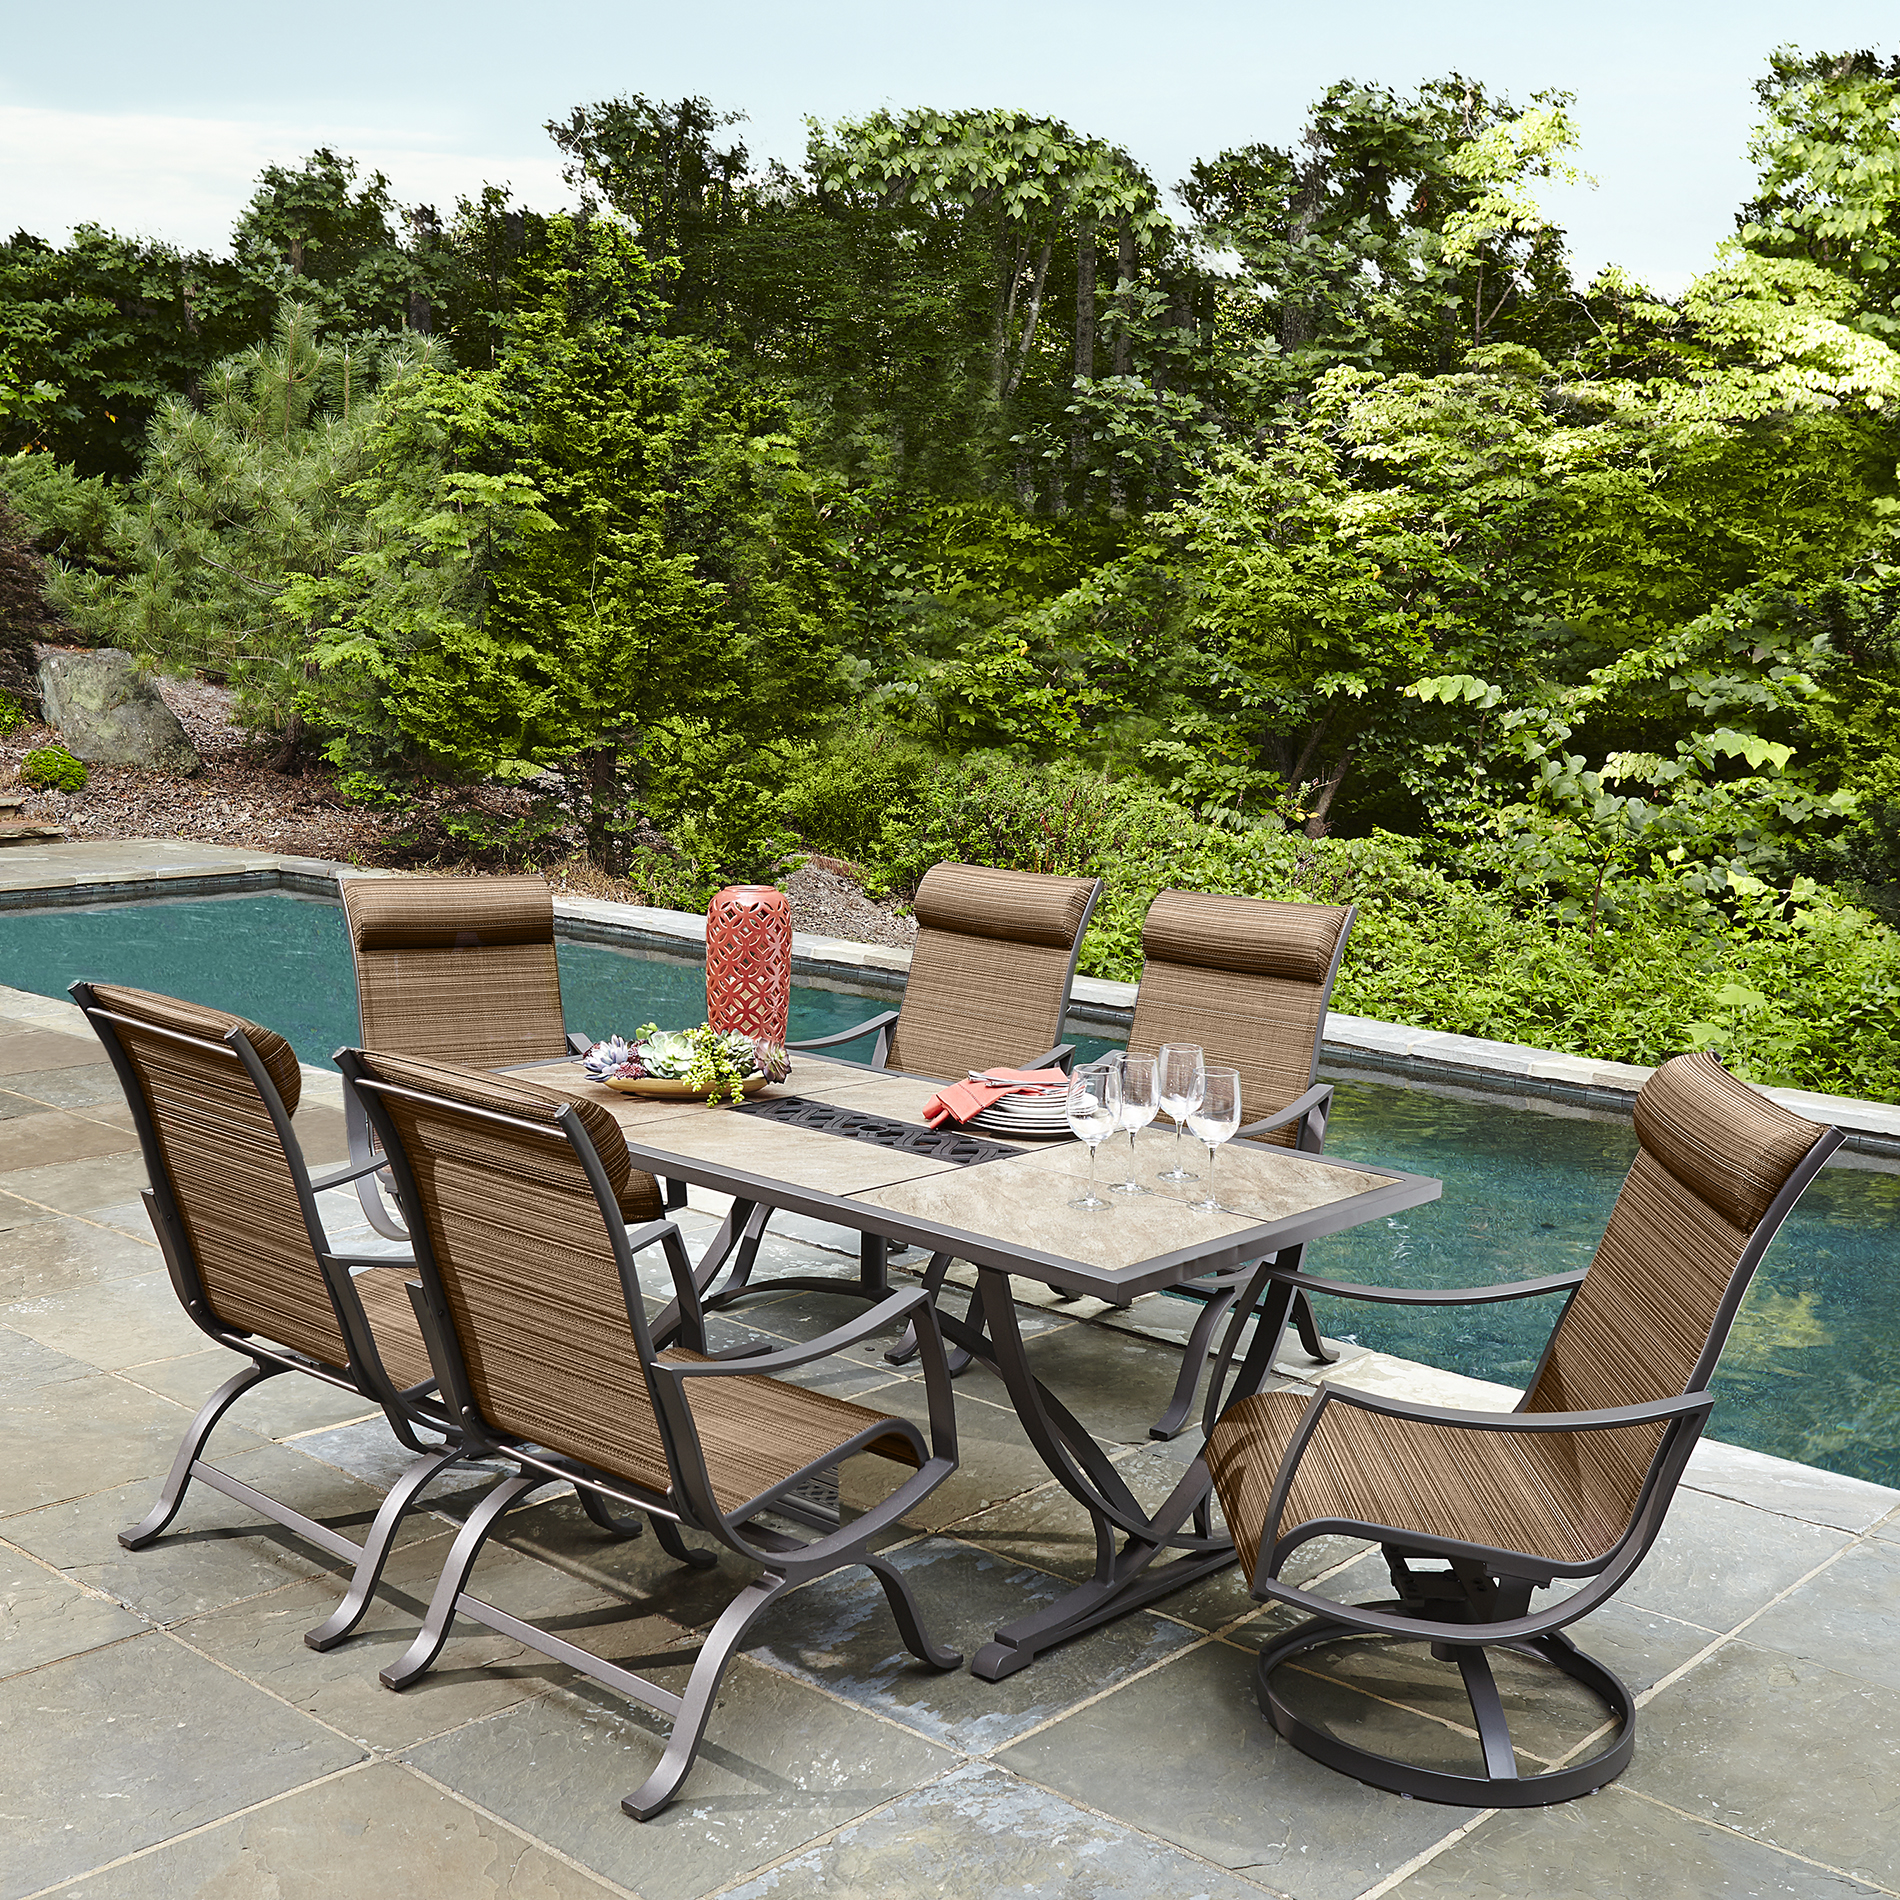 Cool Ty Pennington Style Palmetto 7 Piece Patio Dining Set - Sears outdoor patio dining sets